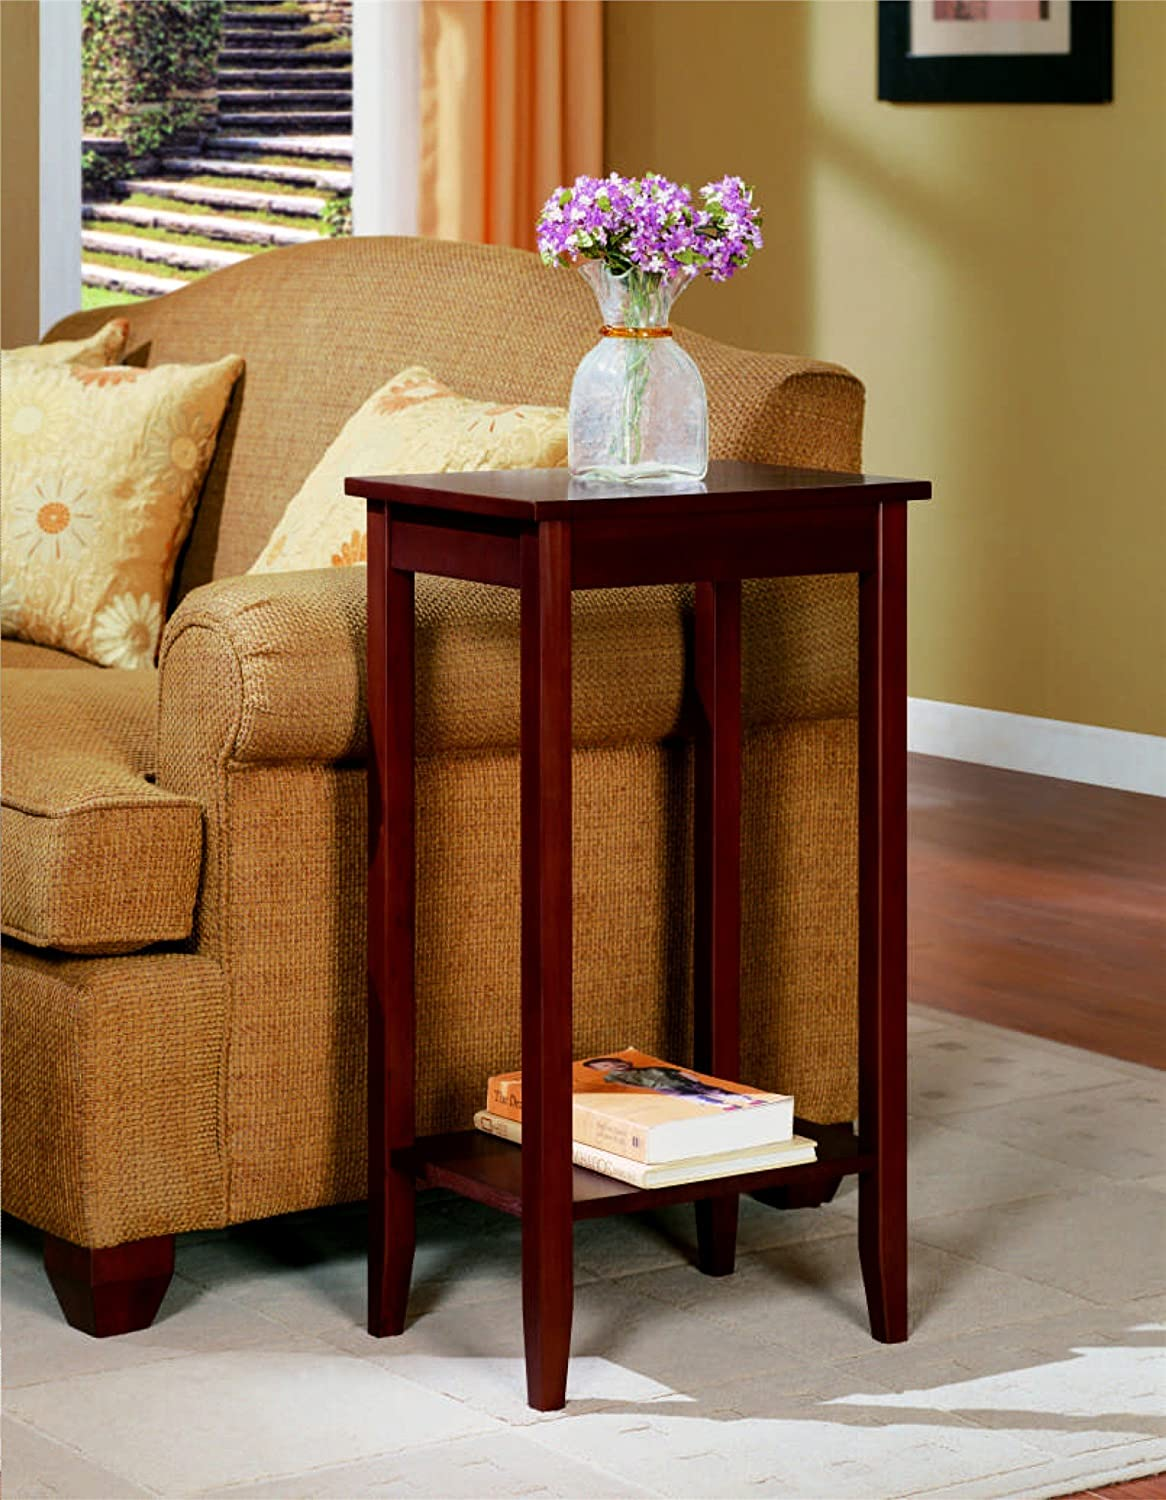 Amazoncom DHP Rosewood Tall End Table Simple Design Multi